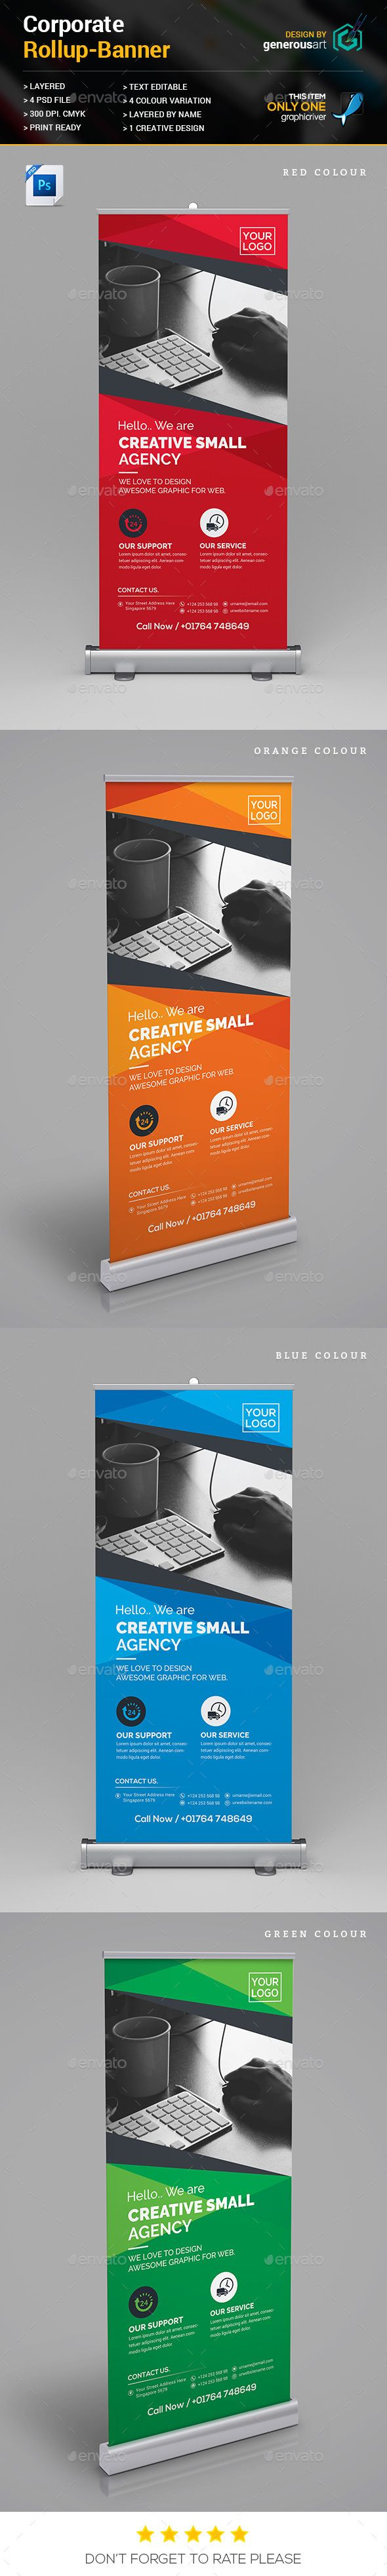 Rollup Banner Template PSD